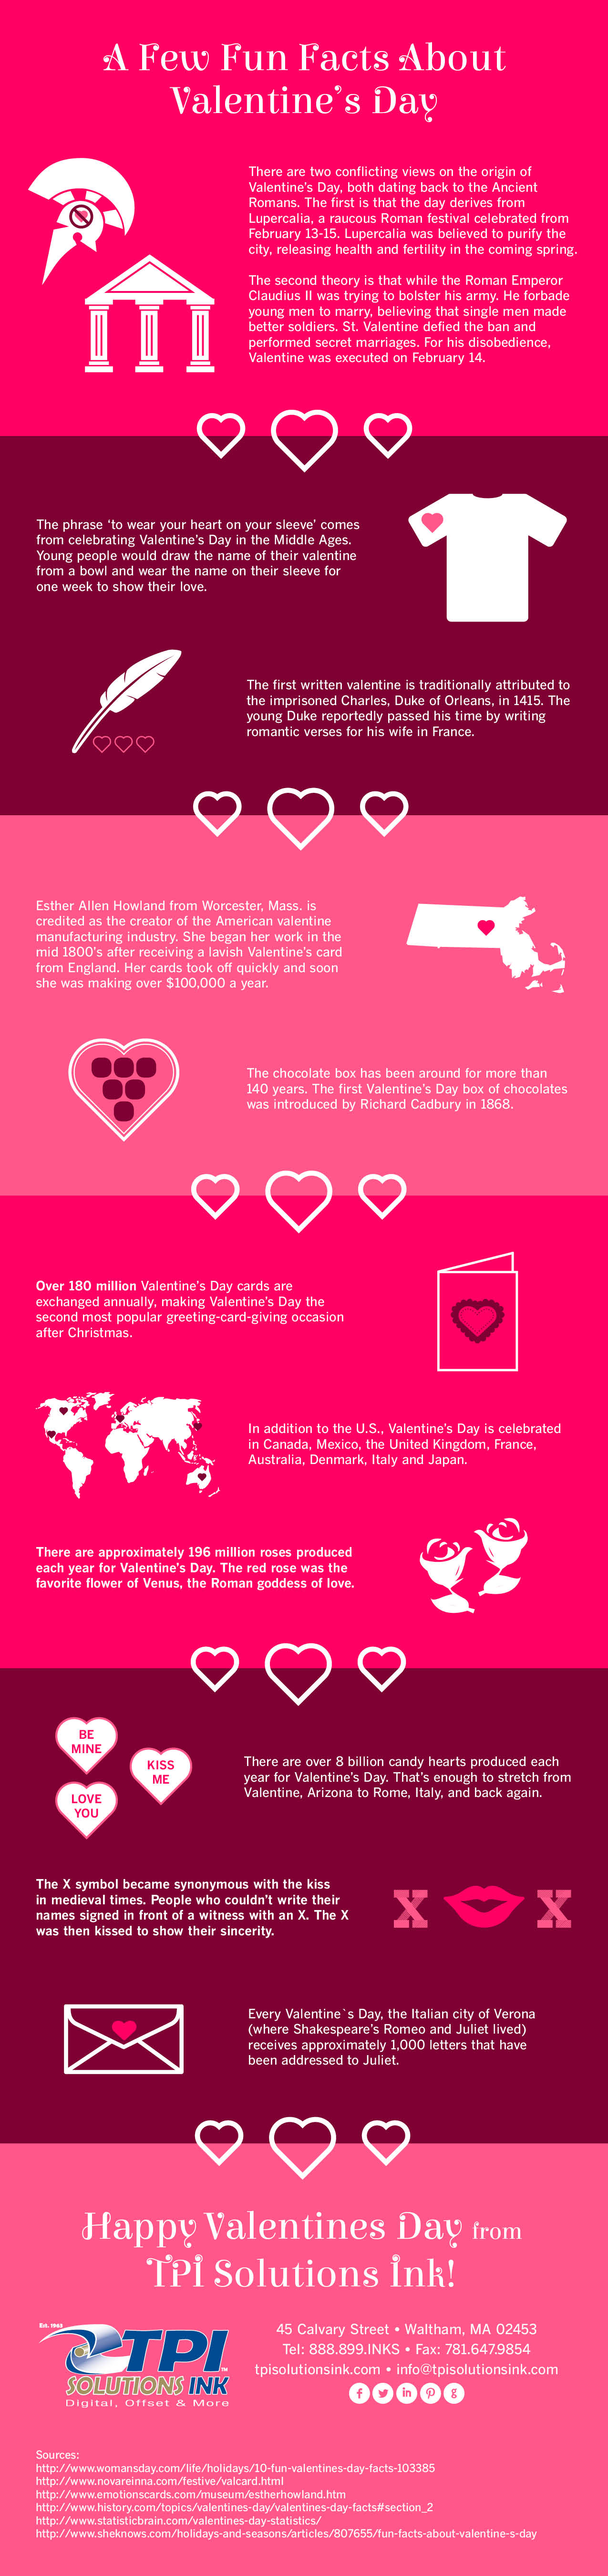 infographic a few fun facts about valentines day